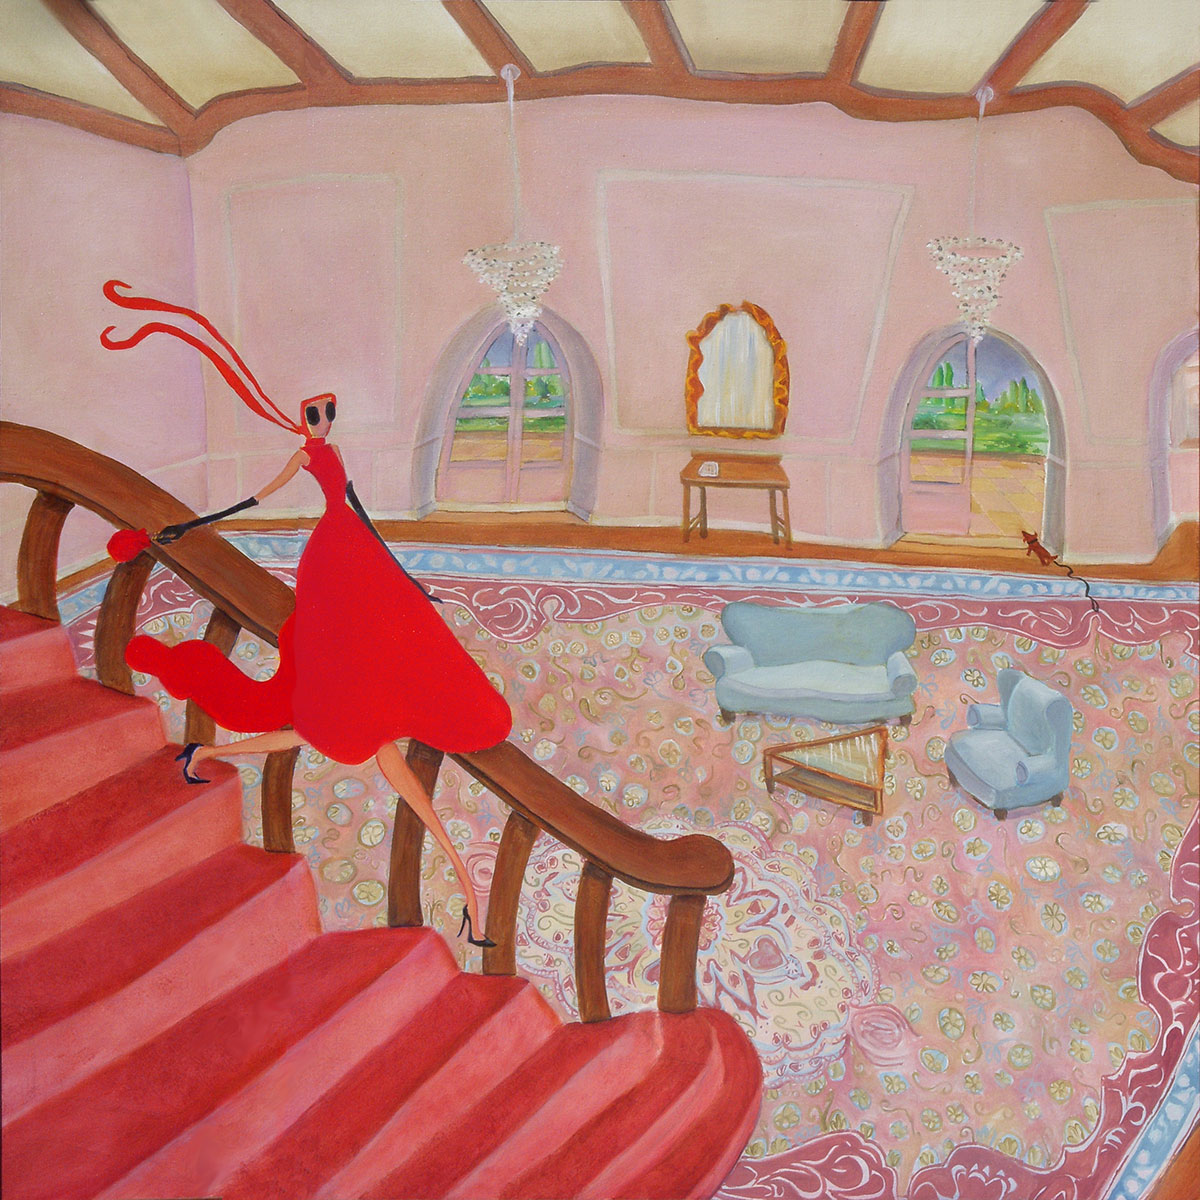 woman in red dress descending staircase pink rug walls